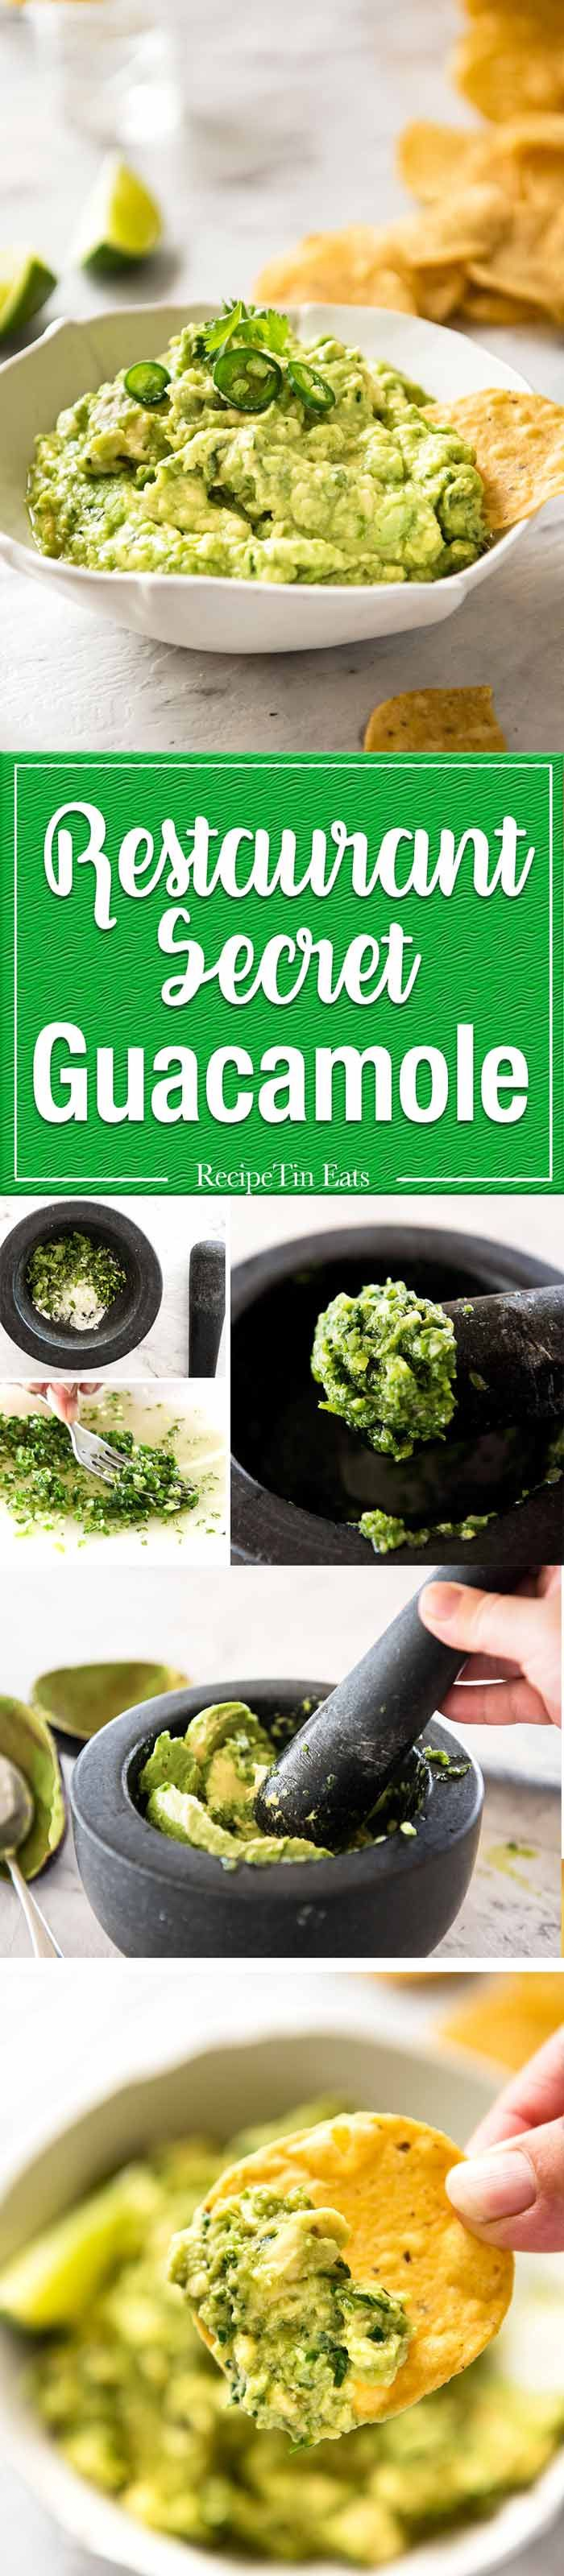 An authentic Guacamole recipe, the way it's made in Mexico and by top Mexican restaurants around the world. The secret step is to make a paste with onion, jalapeno/serrano and coriander/cilantro. Makes all the difference! www.recipetineats.com